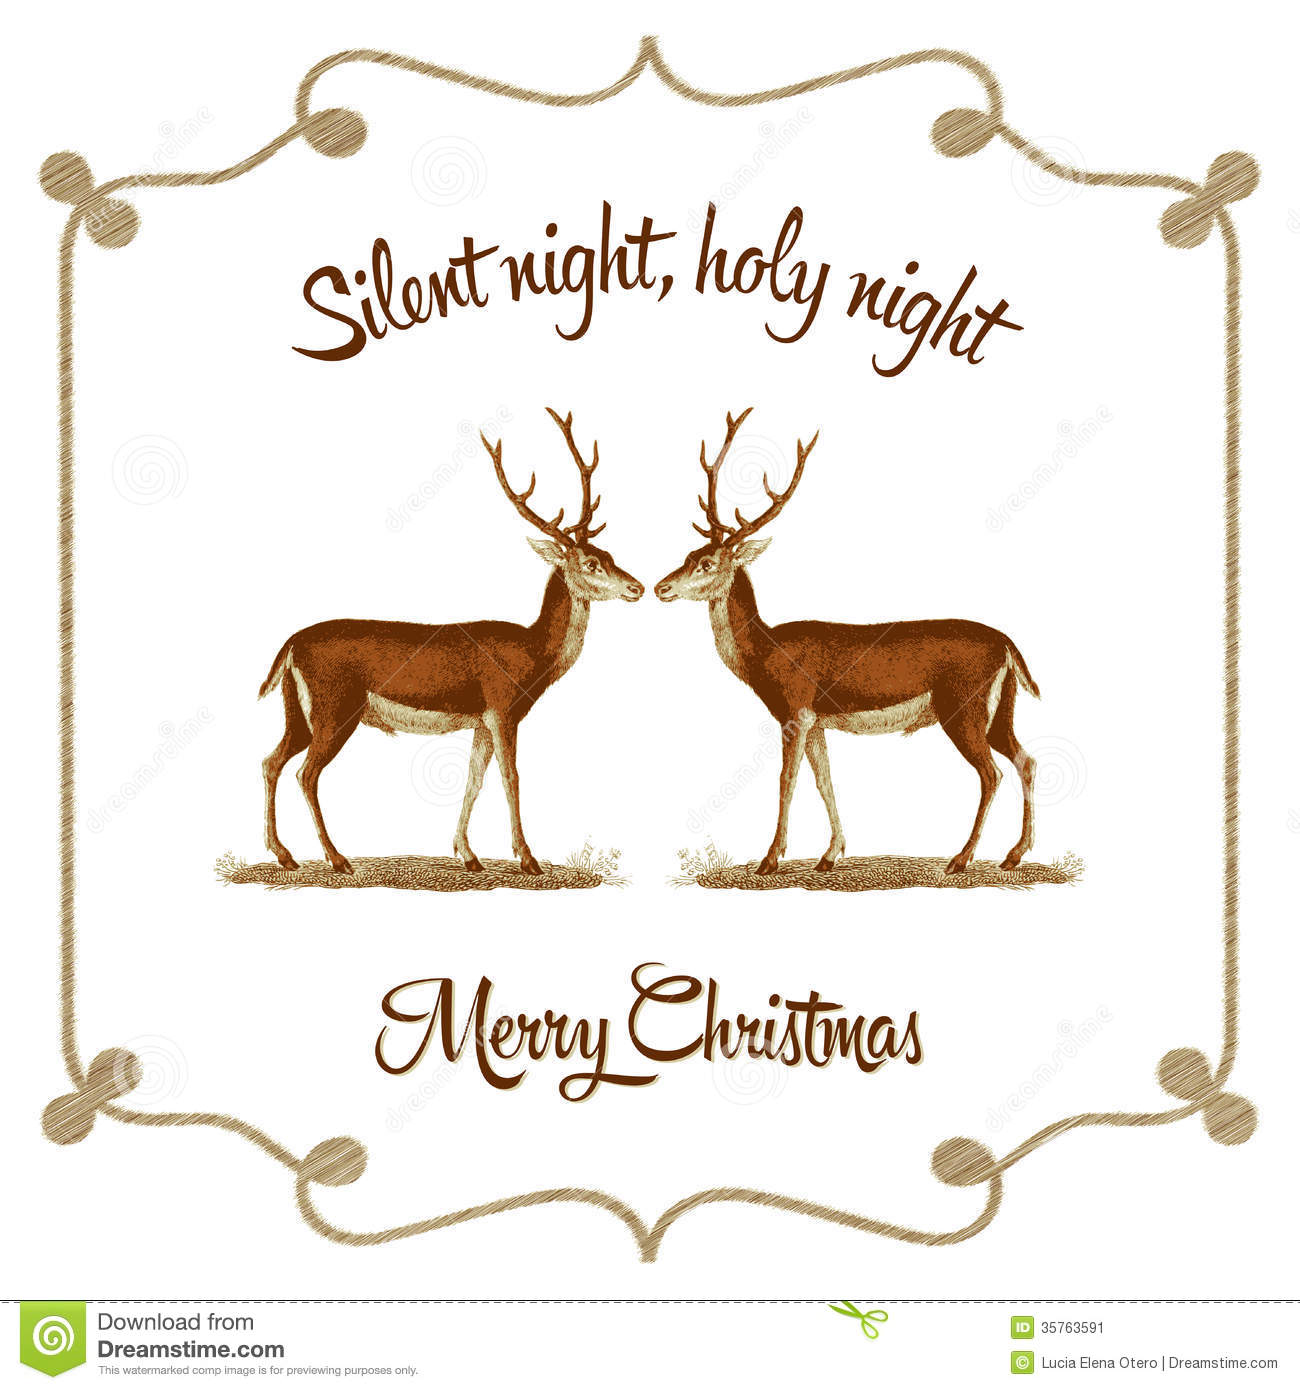 Greetings Card With Vintage Style  It Reads Silent Night Holy Night